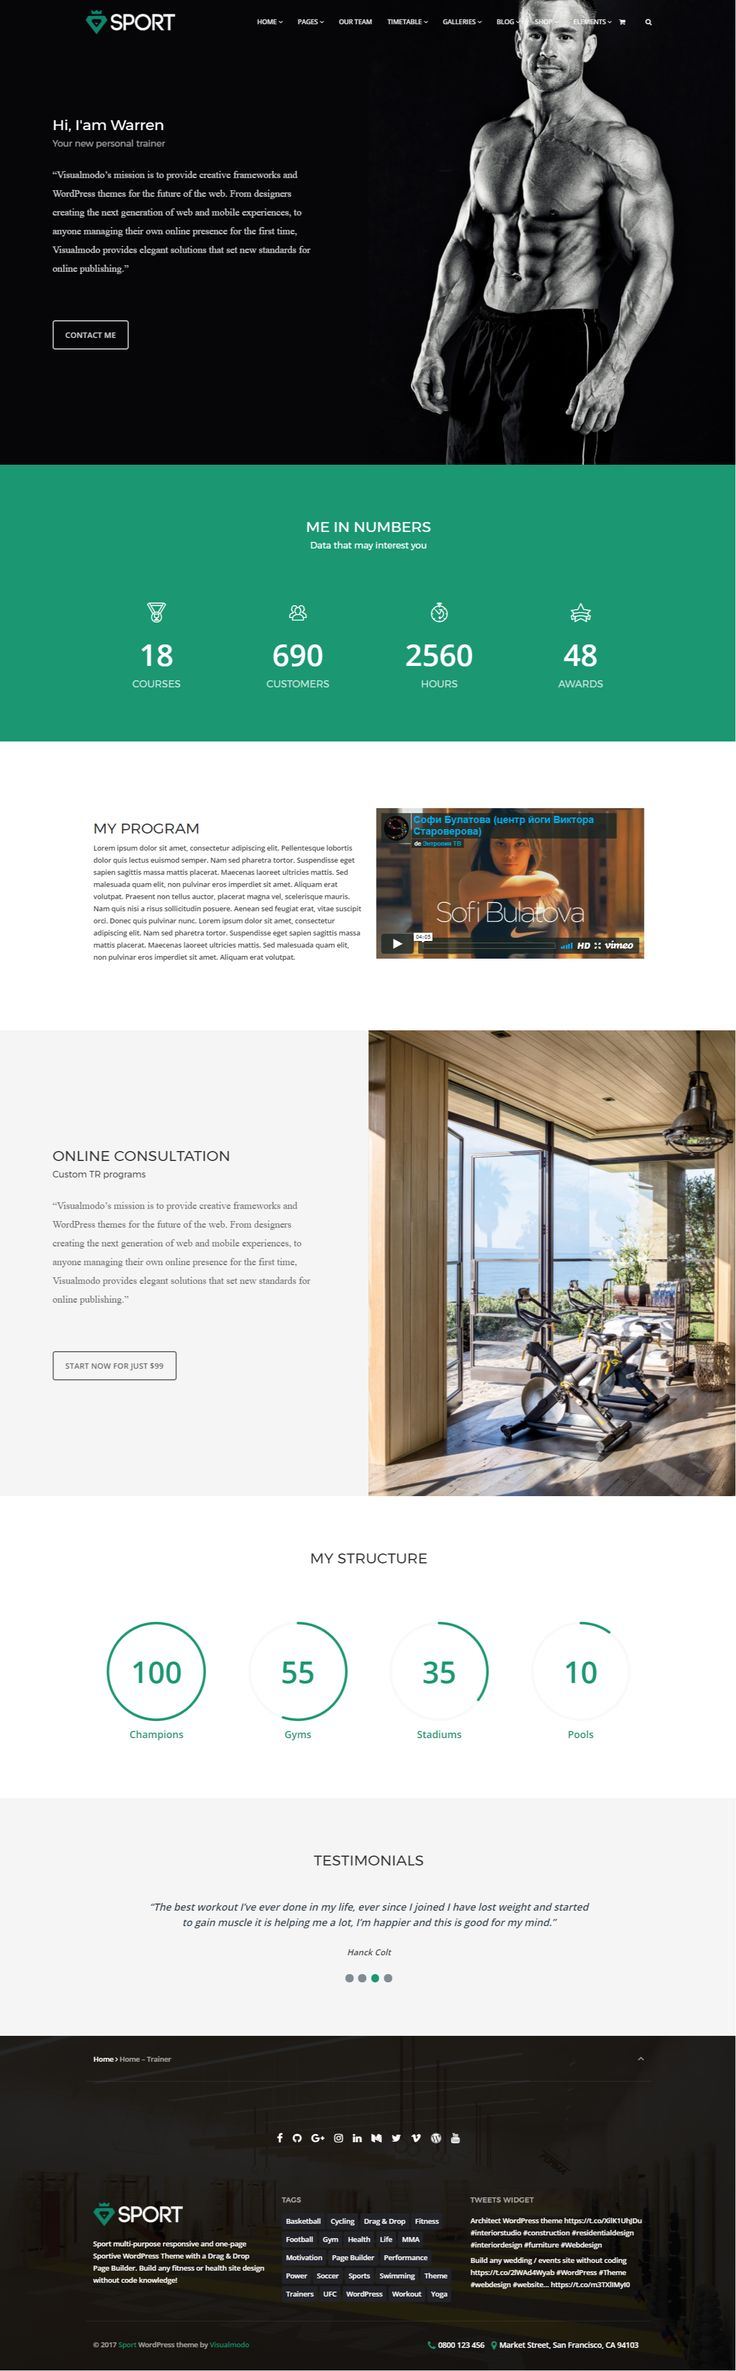 Sport Theme – A WordPress Theme specially developed for sportive site styles, if you want to build a gym. health. fitness, sport team or any other sports site style it's the right theme for you! http://www.mojomarketplace.com/item/sport-multi-purpose-sportive-wordpress-theme  ⚽️ #webdesign #HTML5 #CSS3 #template #plugins #theme #wordpress#onepage #gym #sport #health #team #blog #fitness #spa #crossfit